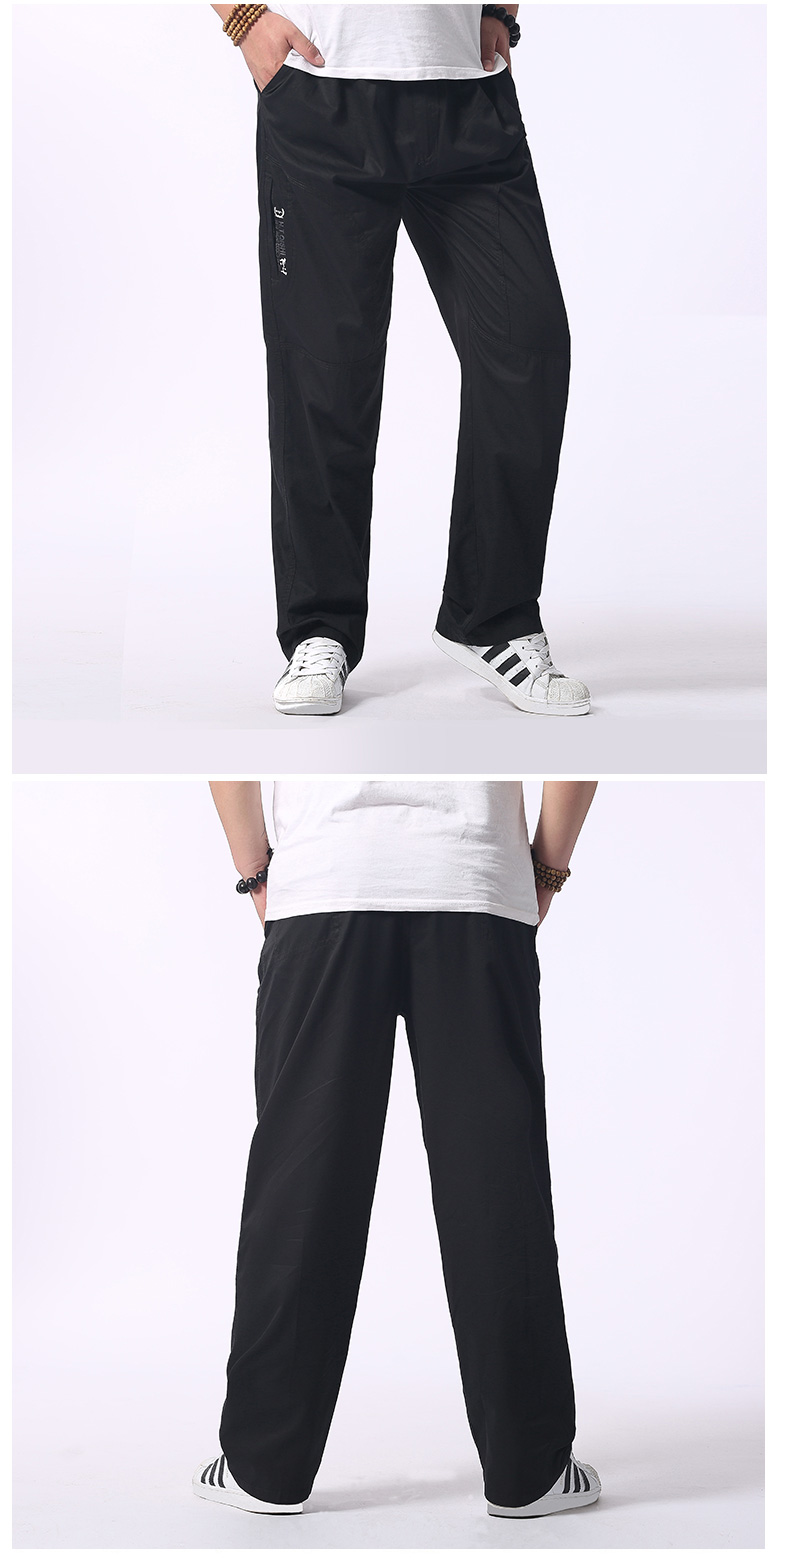 Man Loose Fitting Cargo Pants Yellow Black Gray Khaki  Overall For Mens Cotton Comfort Trousers Elastic Waist Pant American Apparel (13)